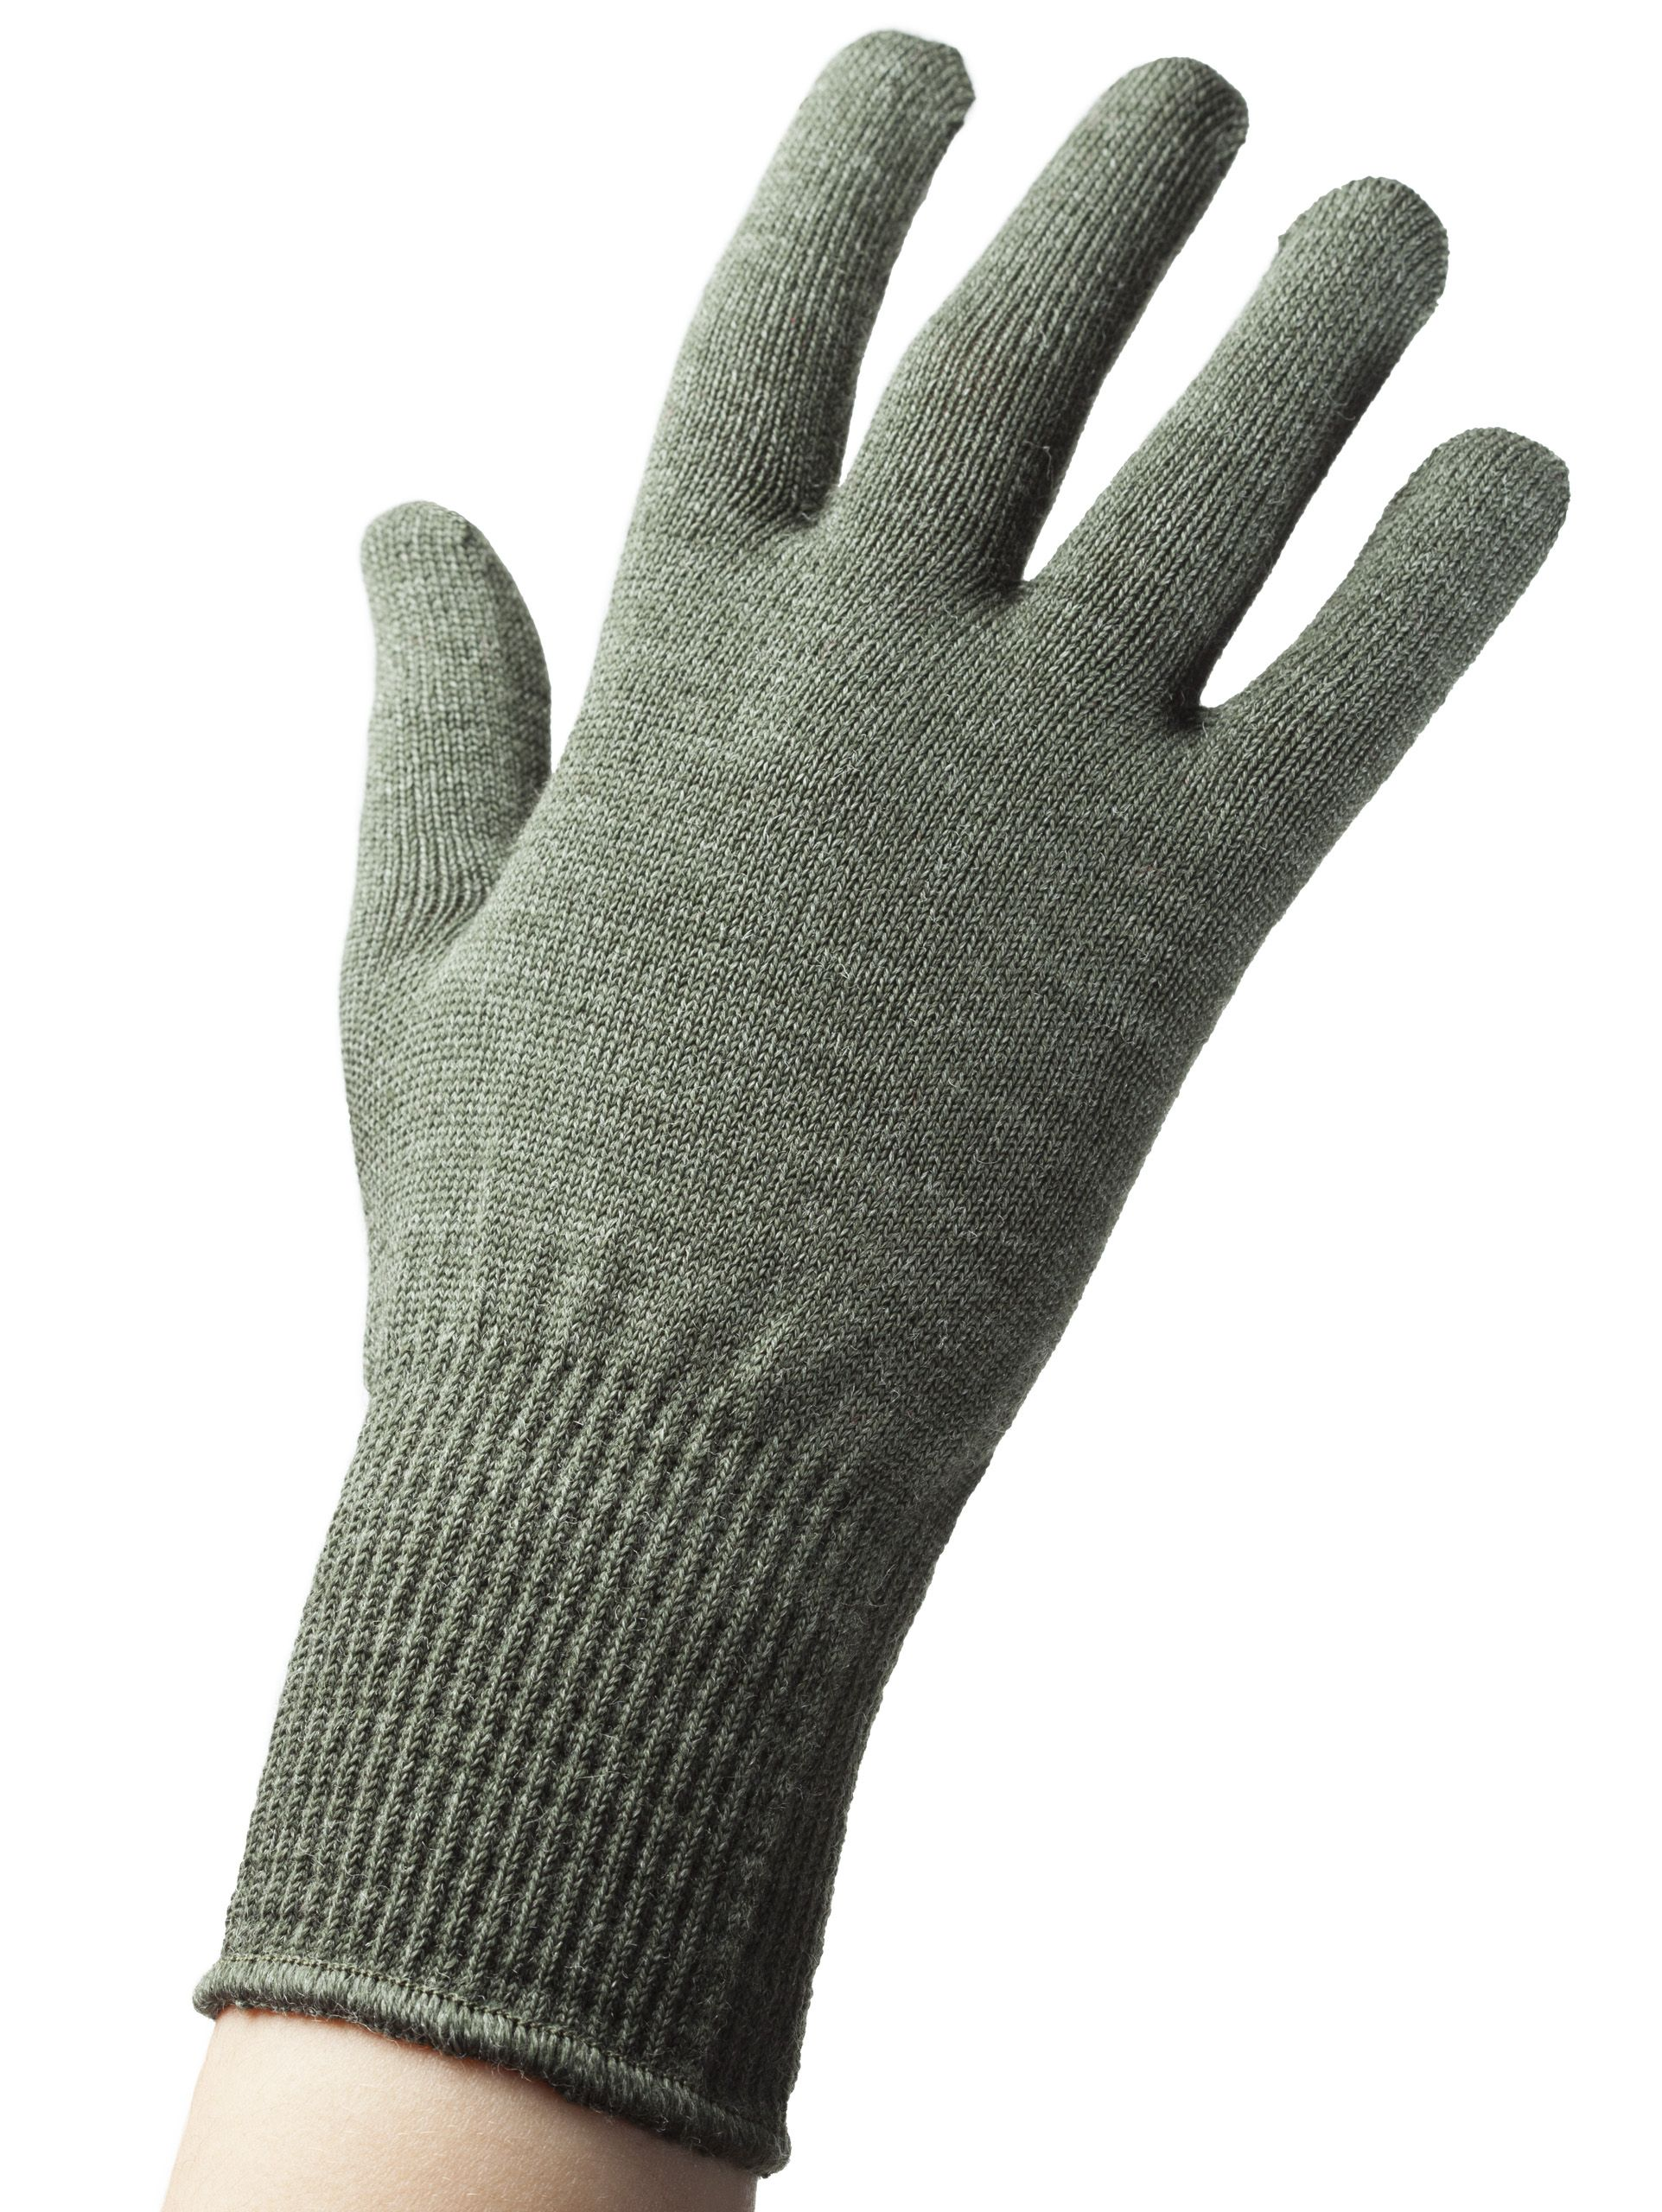 b9642a70b62 EDZ Merino Wool Gloves Green seamless knitted glove that can be worn as a  liner glove or as thin gloves